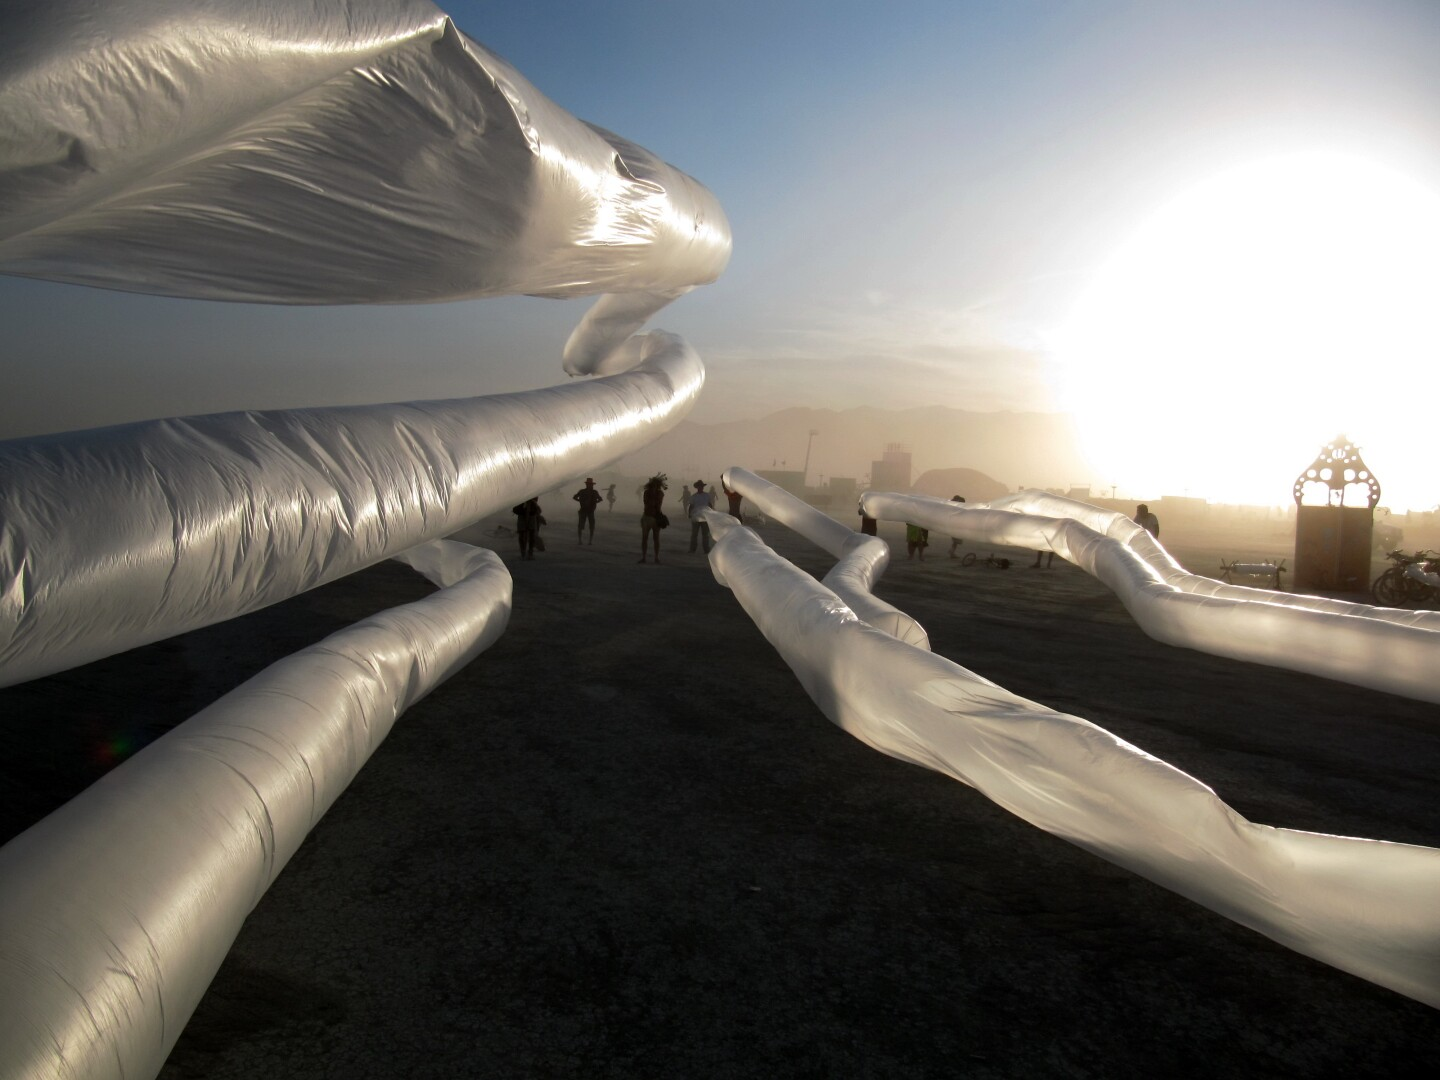 Sculpting the Wind at Burning Man